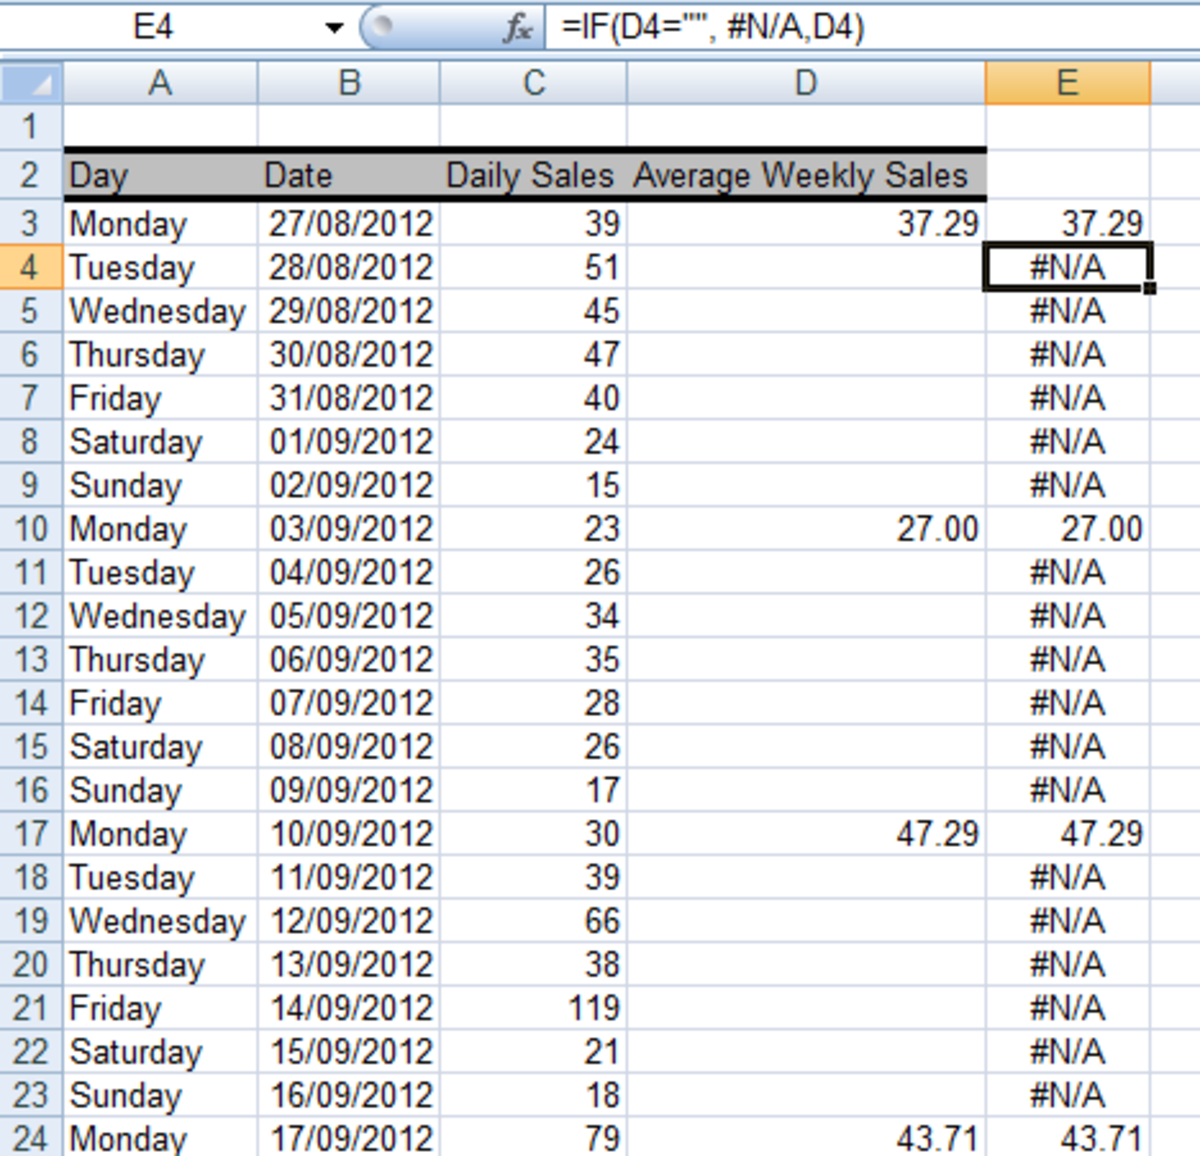 Ediblewildsus  Wonderful How To Get Excel  And  To Ignore Empty Cells In A Chart Or  With Fascinating Using The If Function In A Formula To Convert Empty Cells To Na With Easy On The Eye Stacked Line Chart Excel Also D D  Character Sheet Excel In Addition Balance Sheet Example Excel And Excel Drill Down As Well As First Quartile Excel Additionally Excel Charting From Turbofuturecom With Ediblewildsus  Fascinating How To Get Excel  And  To Ignore Empty Cells In A Chart Or  With Easy On The Eye Using The If Function In A Formula To Convert Empty Cells To Na And Wonderful Stacked Line Chart Excel Also D D  Character Sheet Excel In Addition Balance Sheet Example Excel From Turbofuturecom